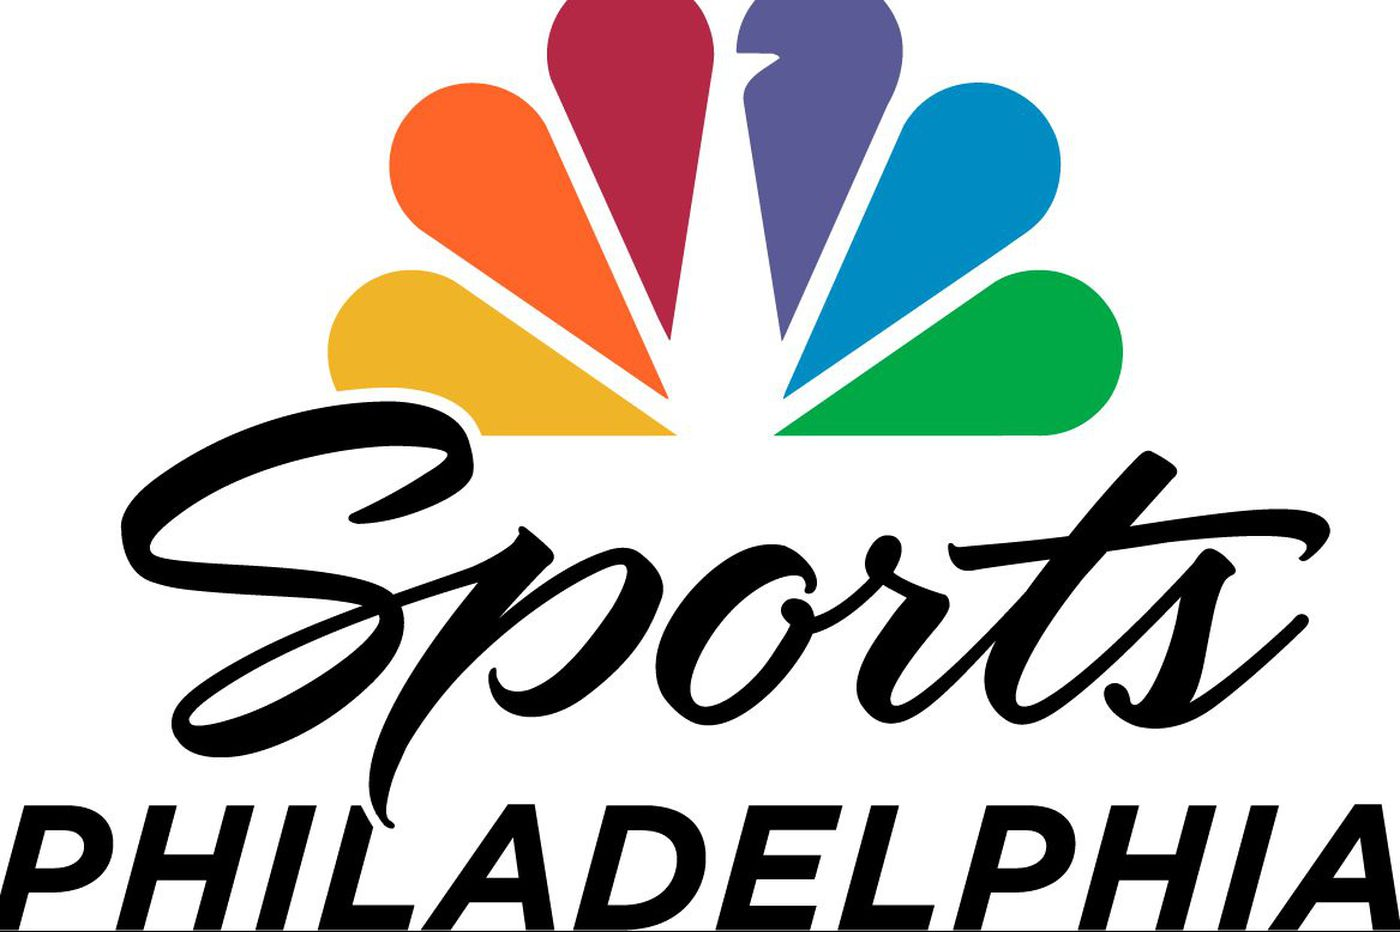 Comcast ditches CSN brand as it embraces NBC for sports networks